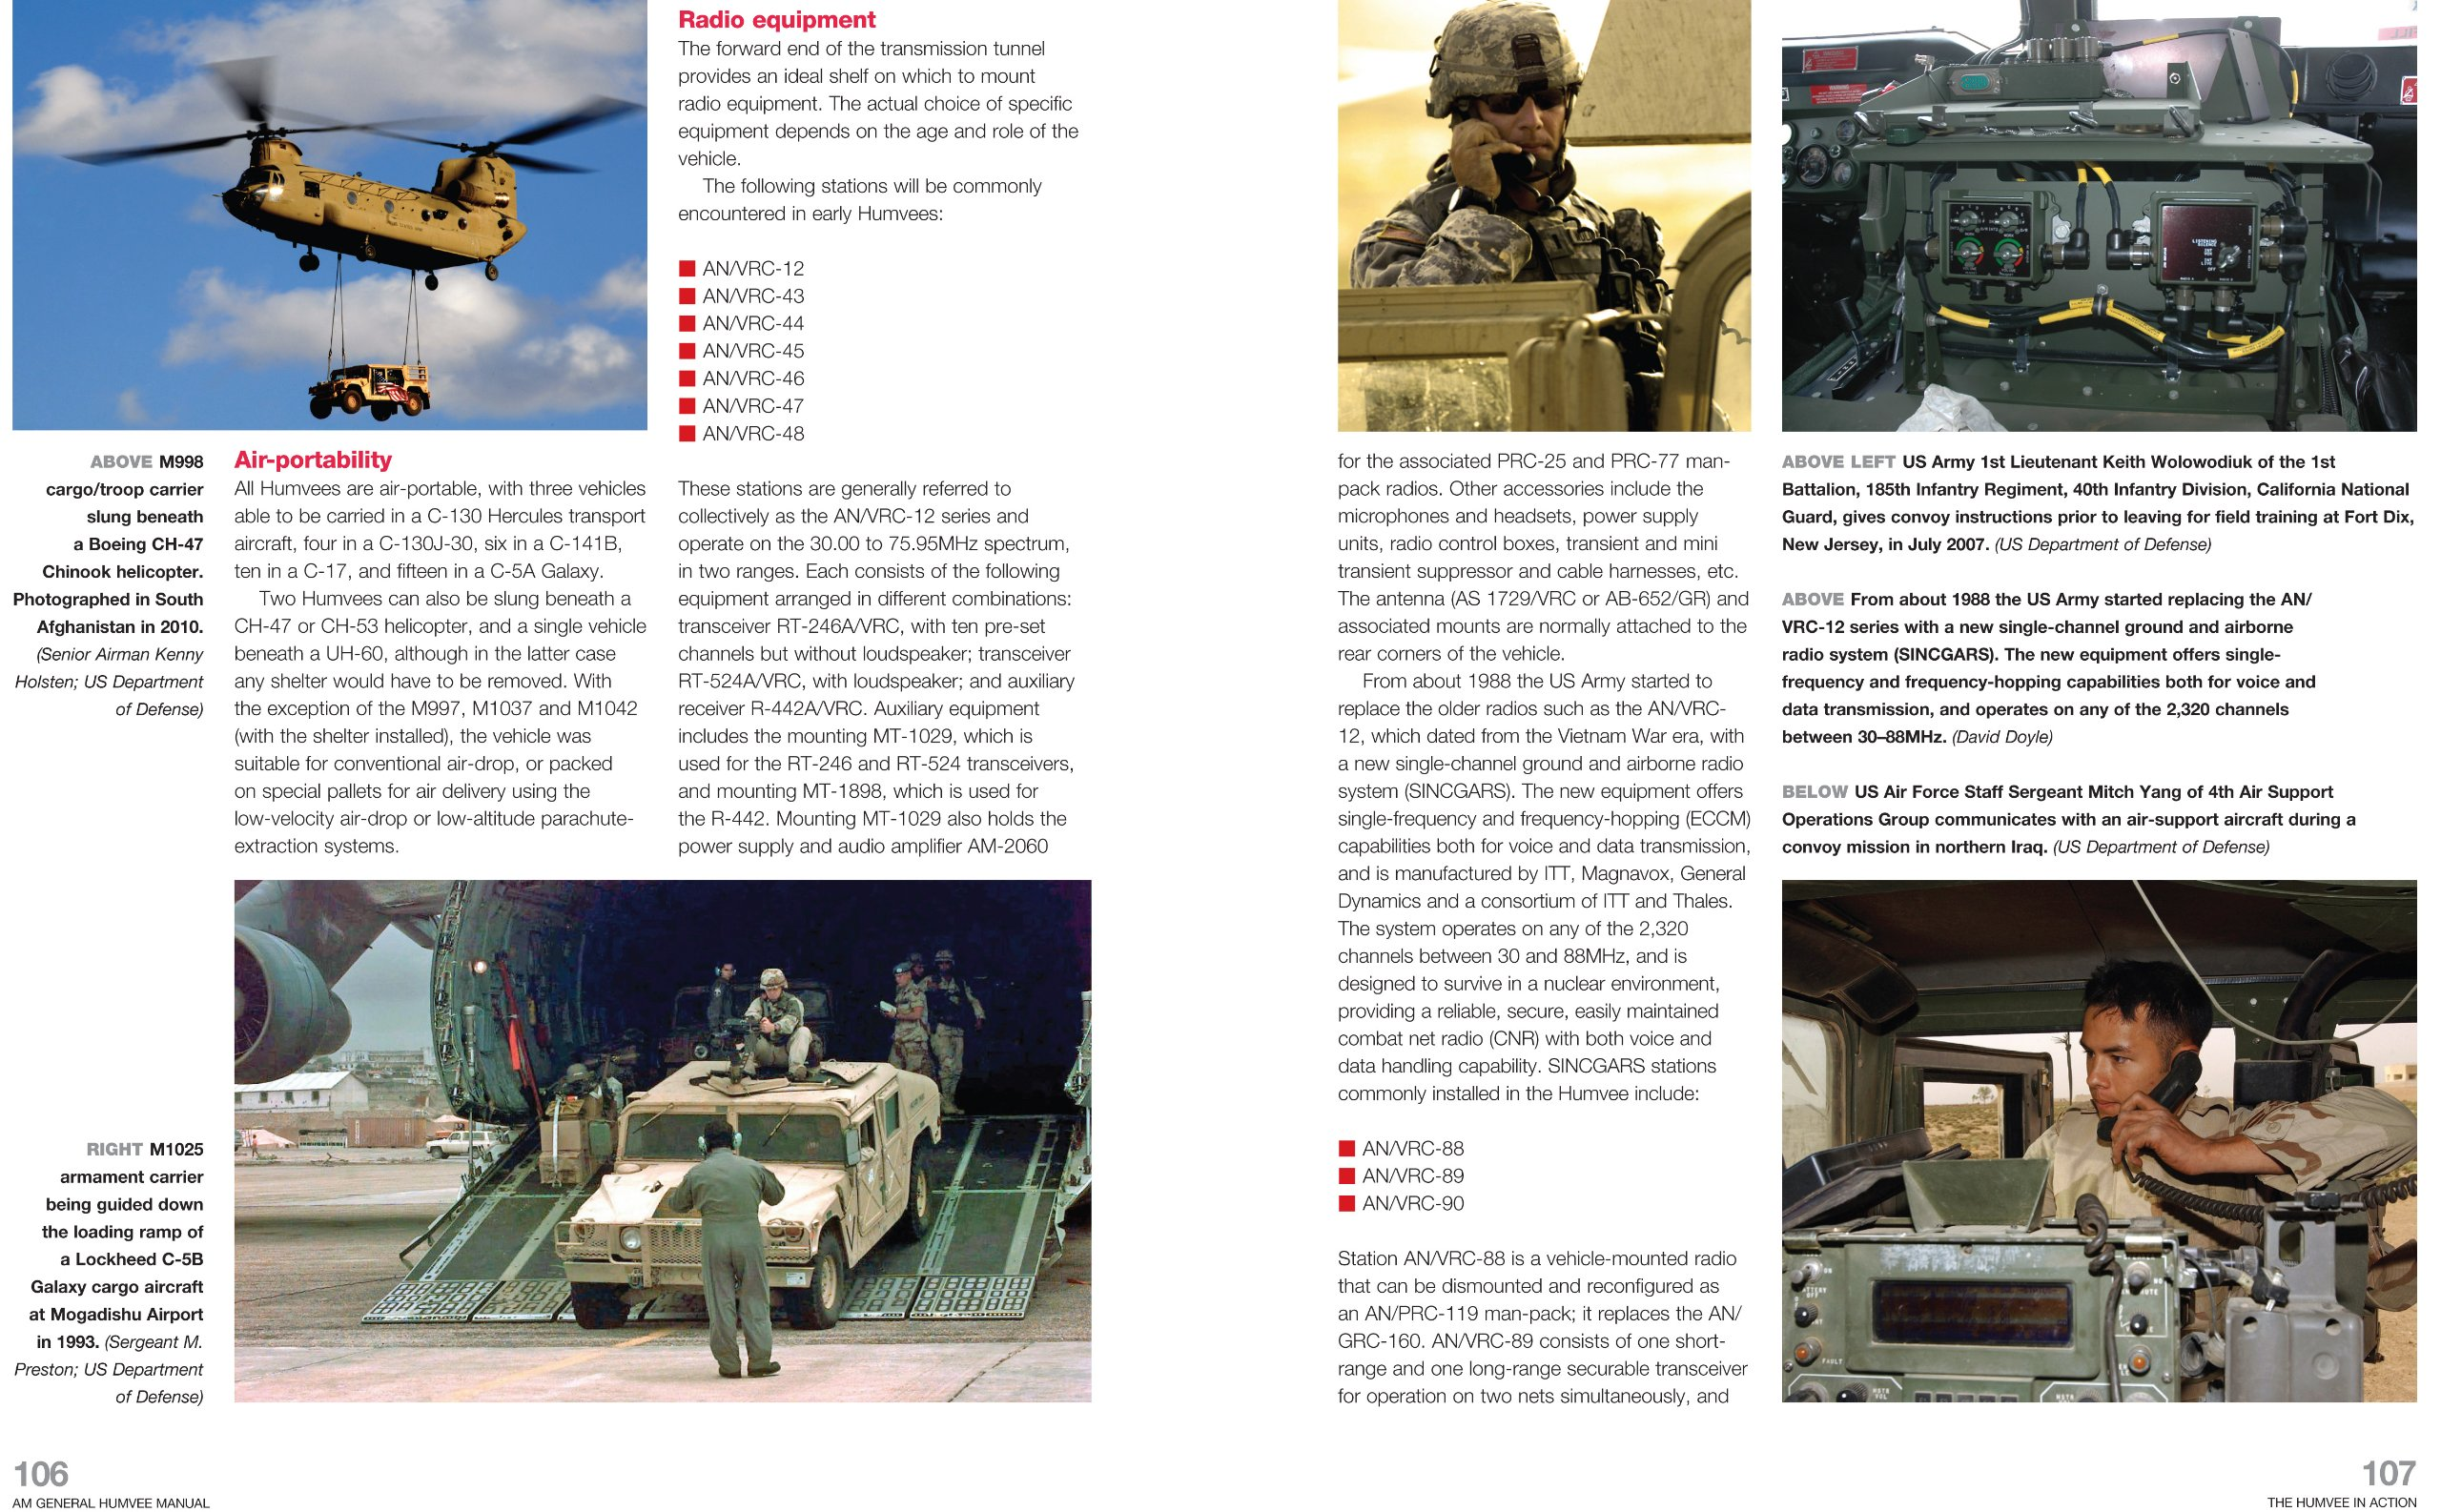 Am General Humvee: The US Army's iconic high-mobility multi